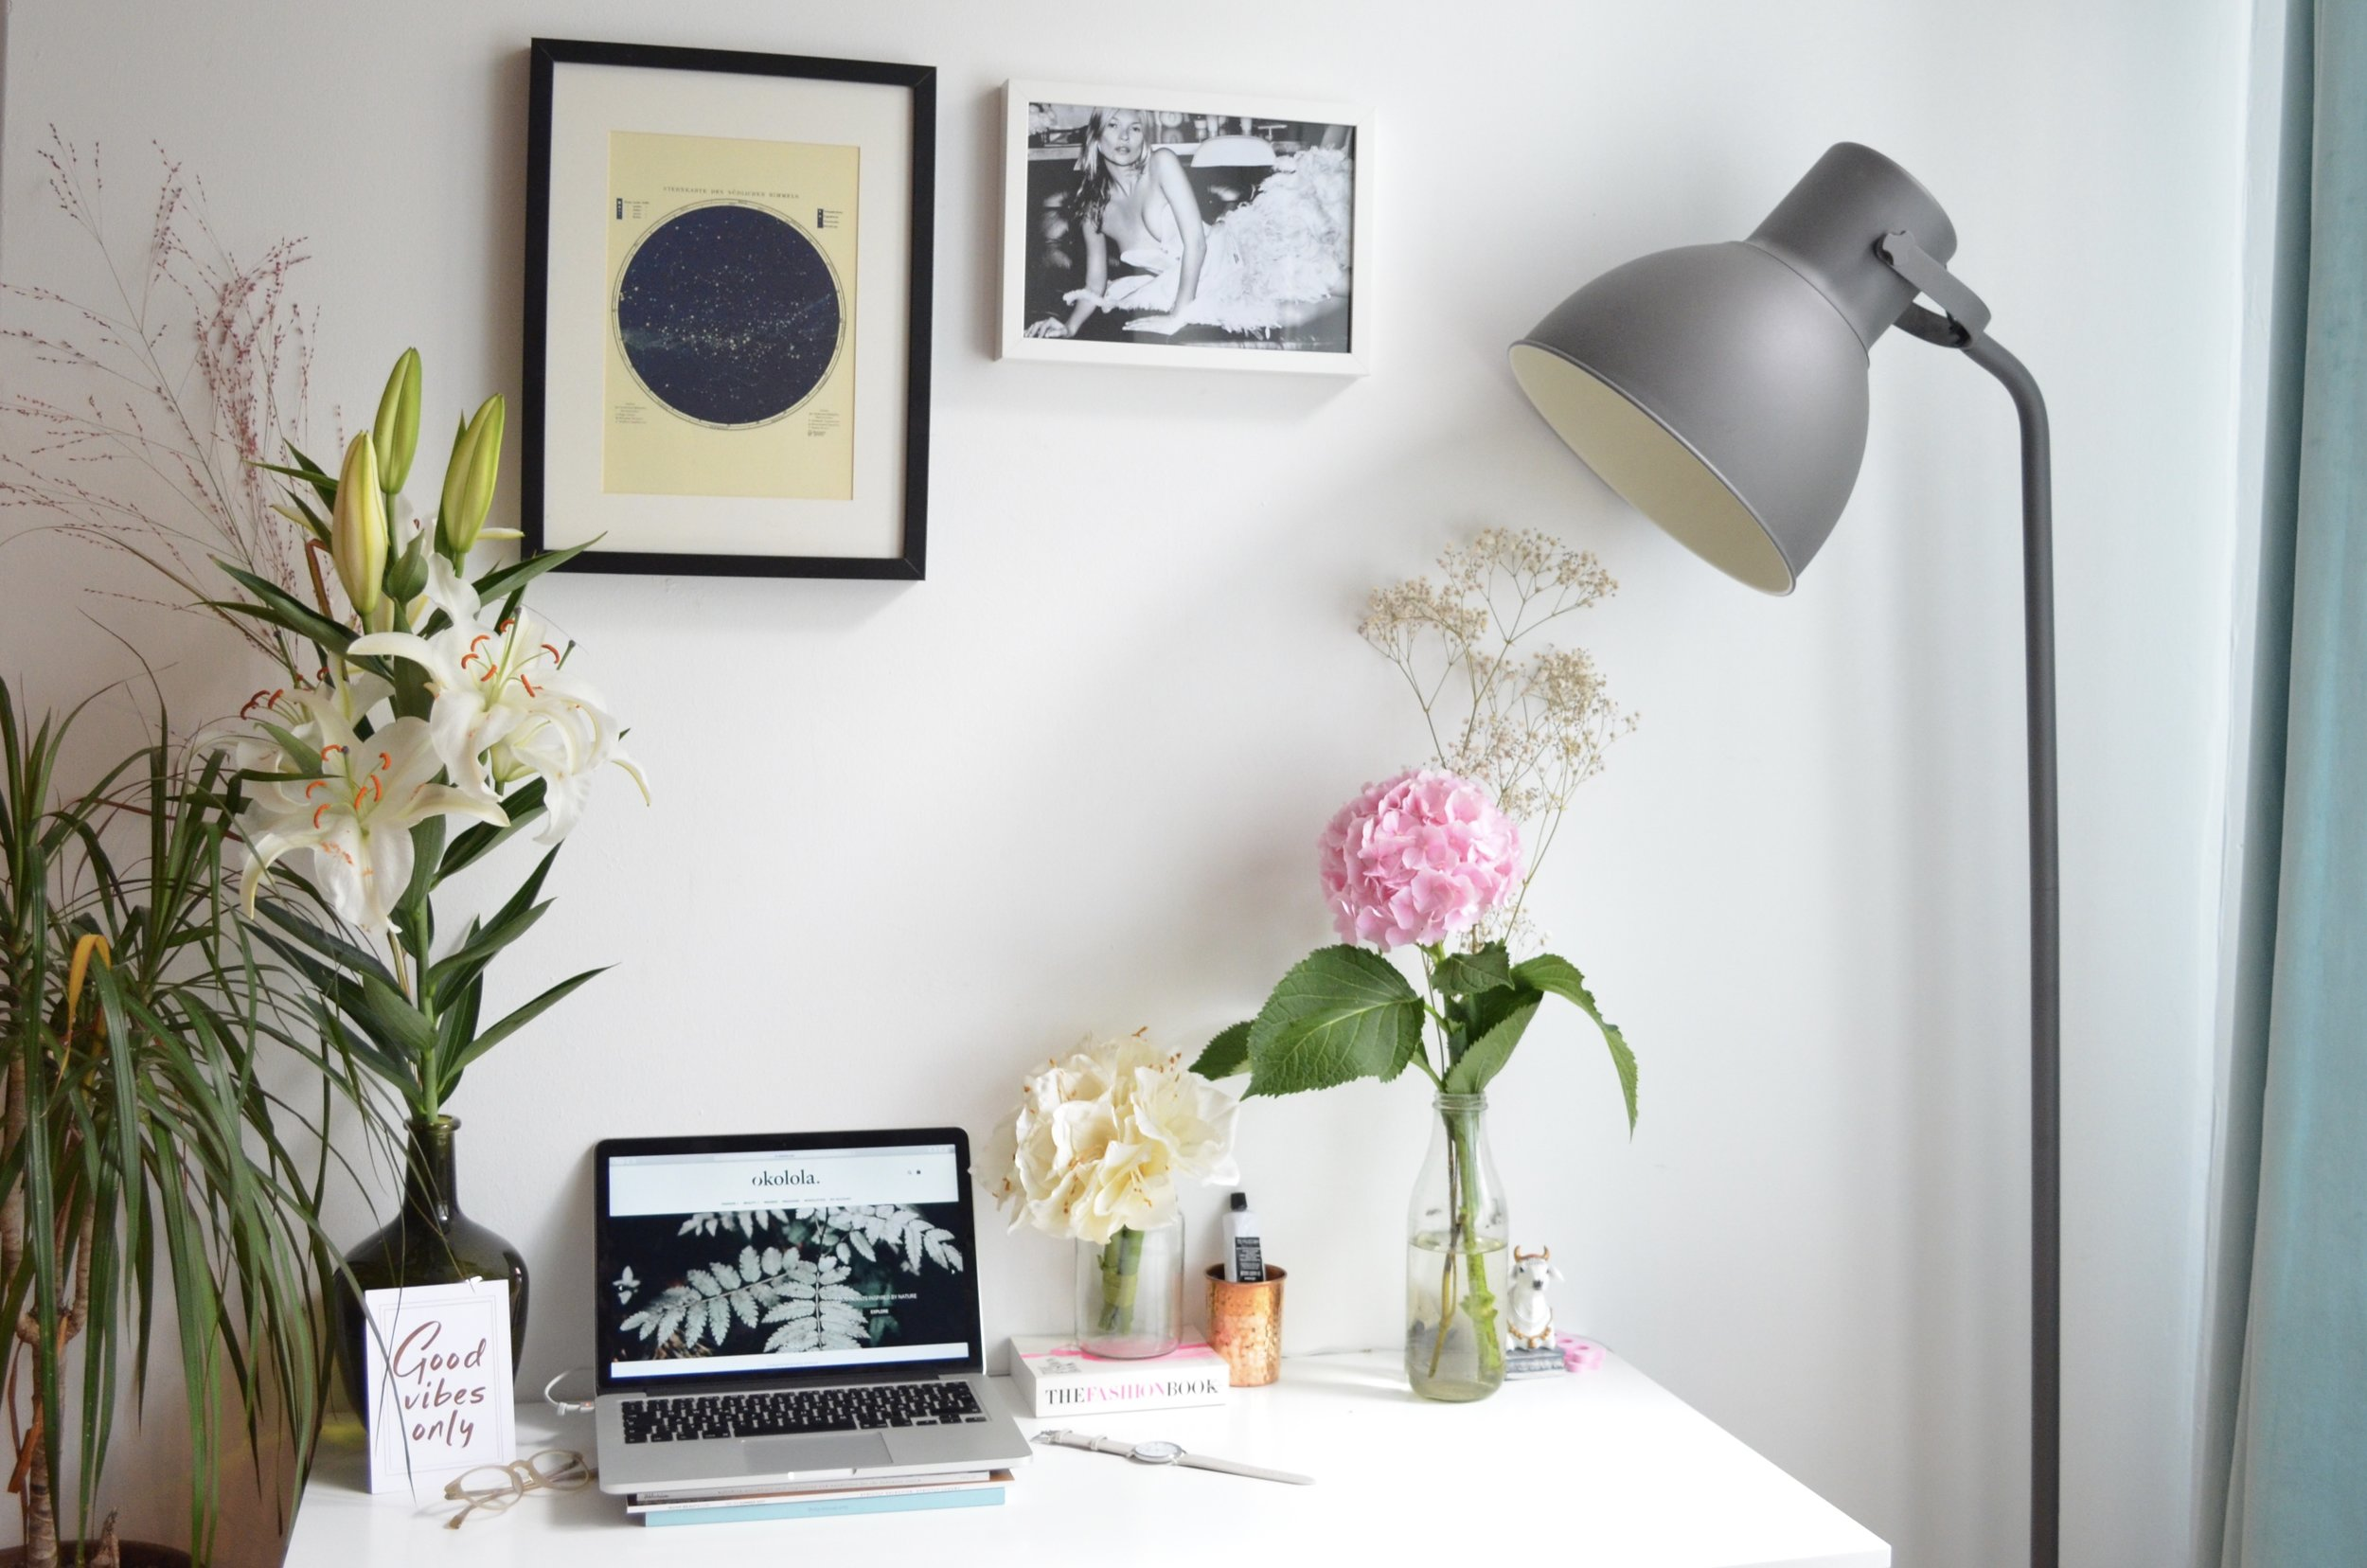 5 TIPS OF WORKING FROM HOME - If you are starting as a freelancer or working on your startup from home then here are my tried and tested tips to make your routine more effective…